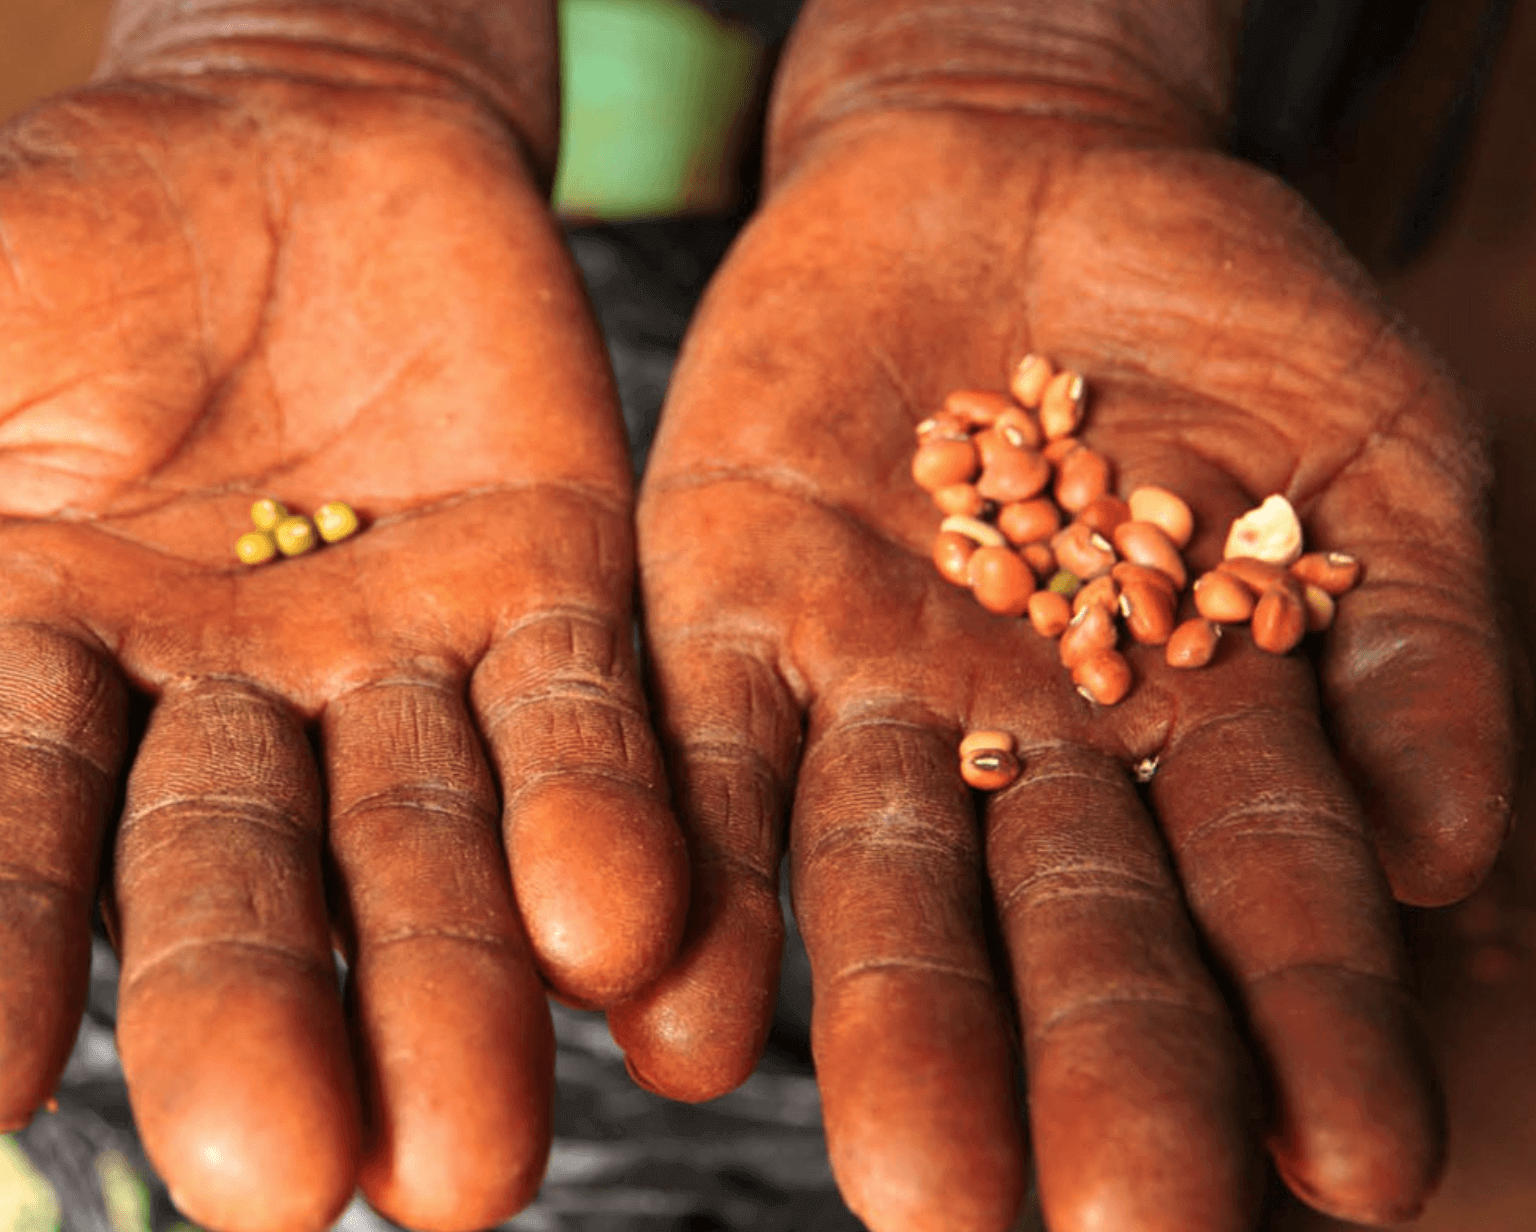 Viewpoint: Why saving seeds is an unproductive farming practice that locks in poverty